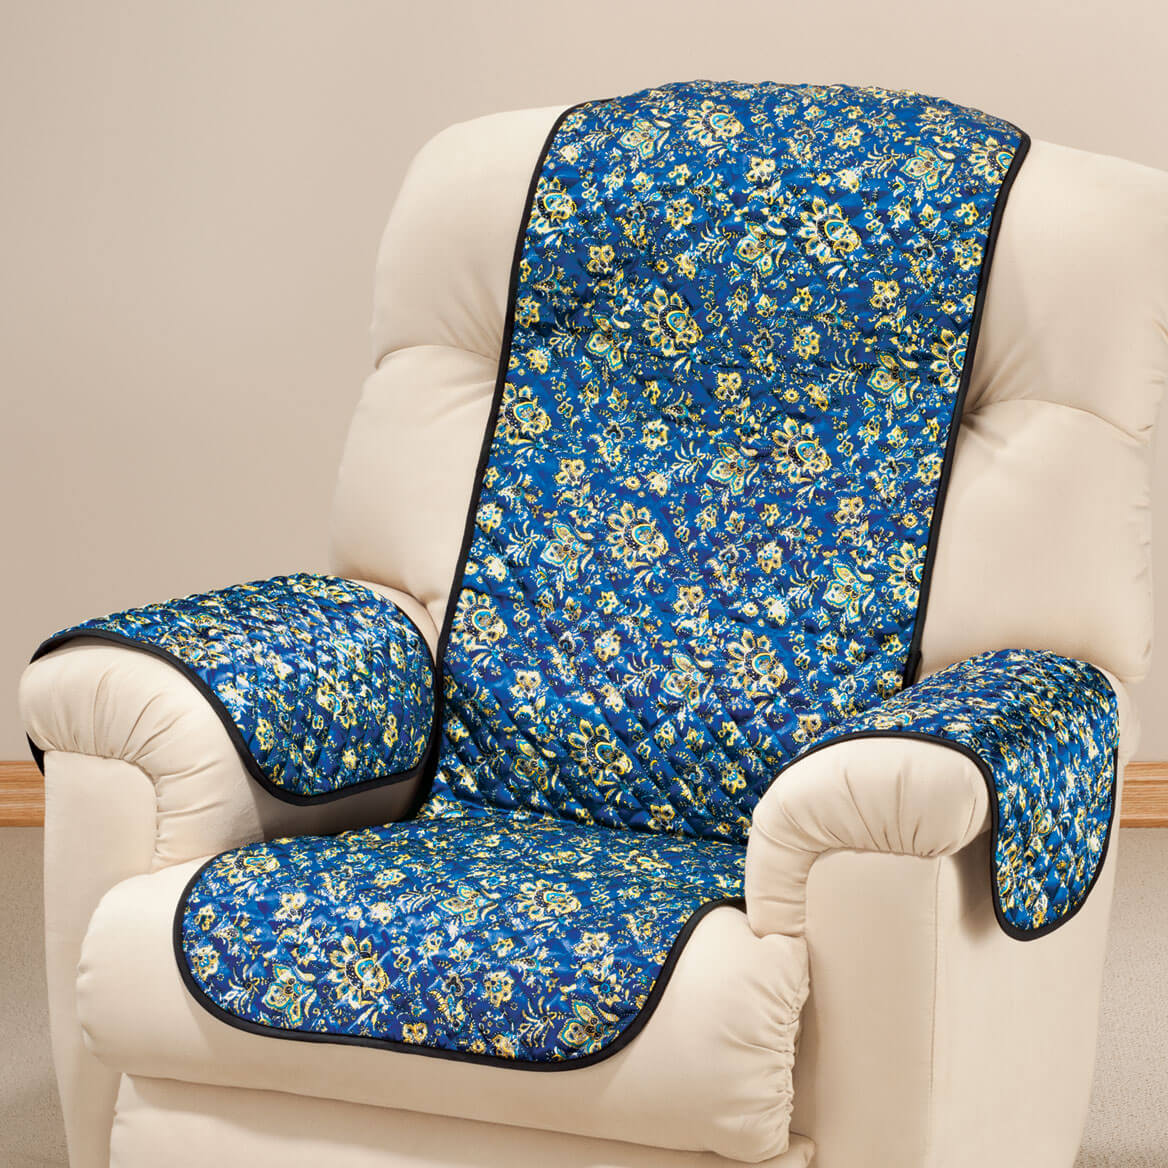 chair covers to buy revolving in indore fashion cover miles